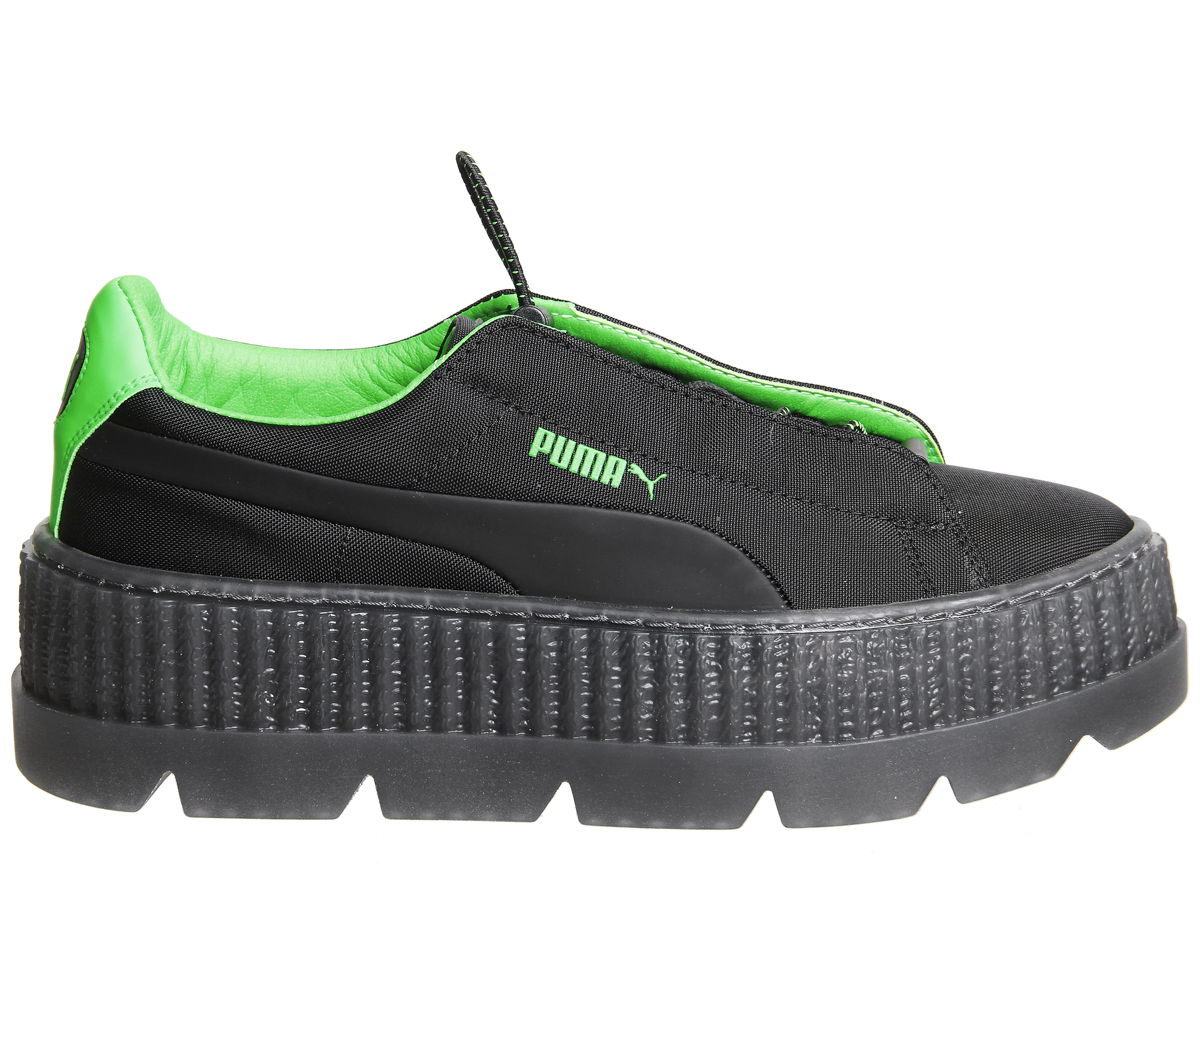 fea1a4a8cfc Sentinel Womens Puma Fenty Cleated Creepers Surf Black Green Trainers Shoes